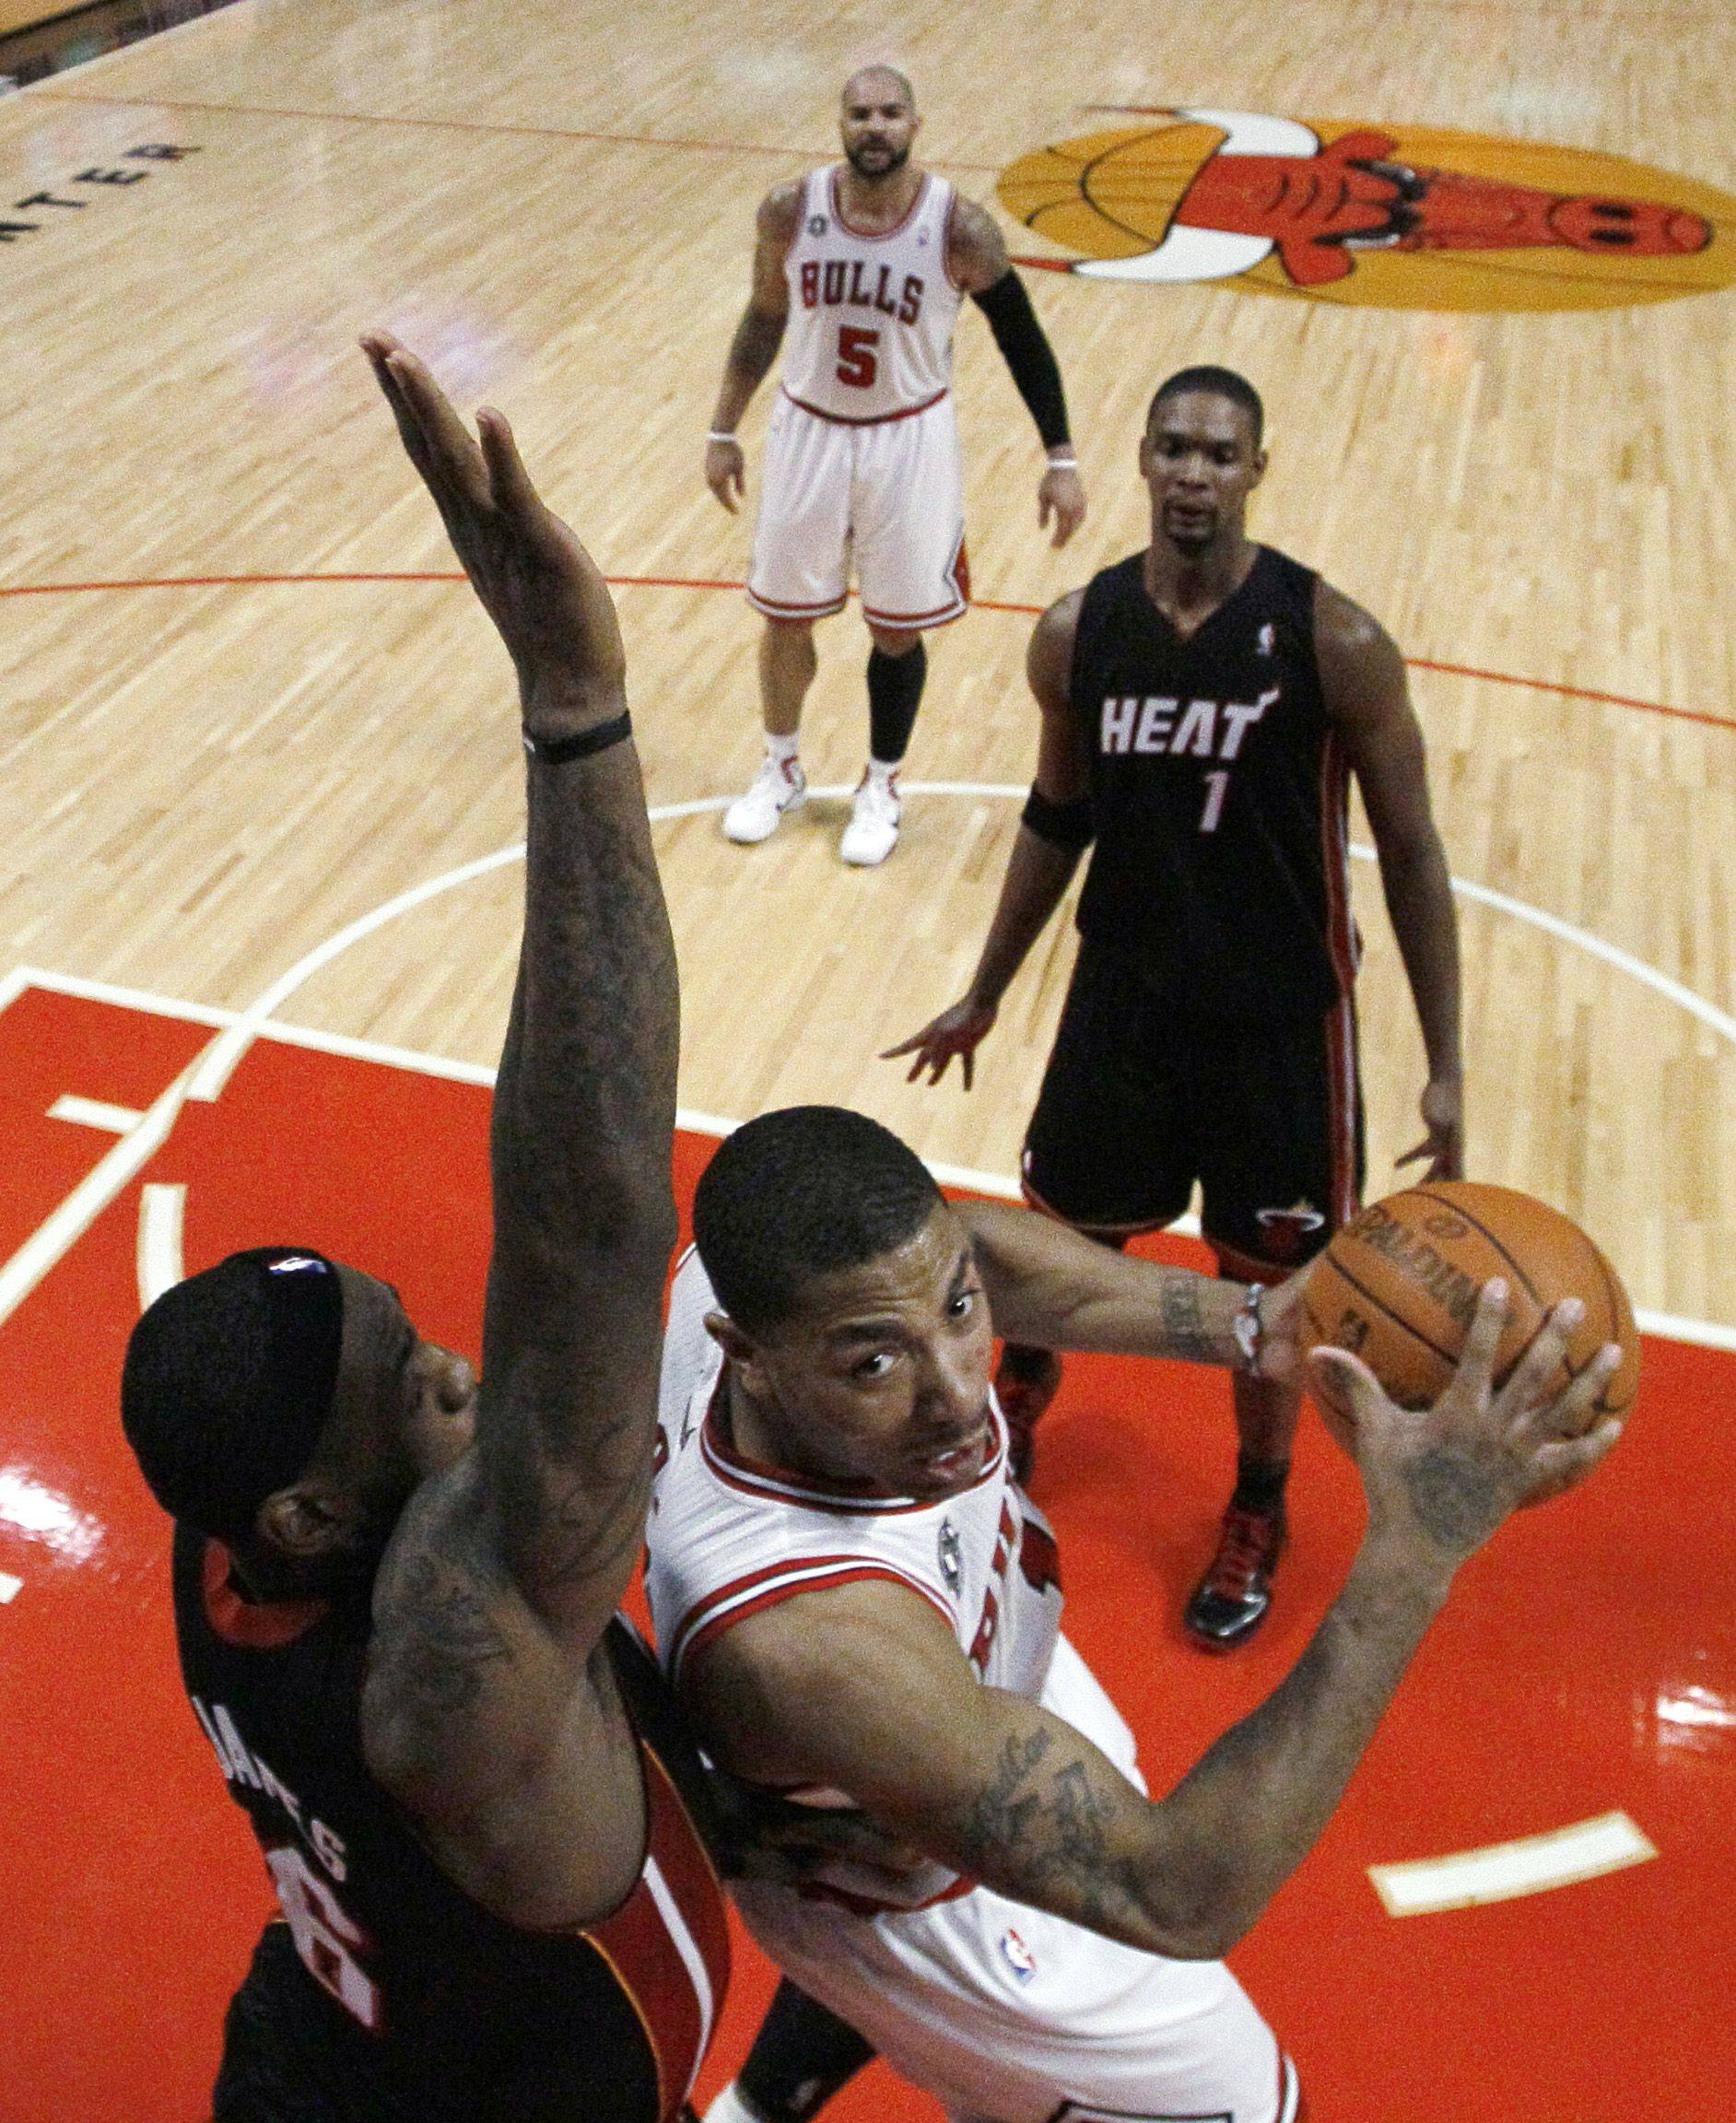 Chicago Bulls guard Derrick Rose, right, looks for a shot against Miami Heat forward LeBron James during the second half of an NBA basketball game Thursday, Feb. 24, 2011, in Chicago. The Bulls won 93-89 with Rose scoring 26 points and James 29. Watching in the background for Miami is Chris Bosh.